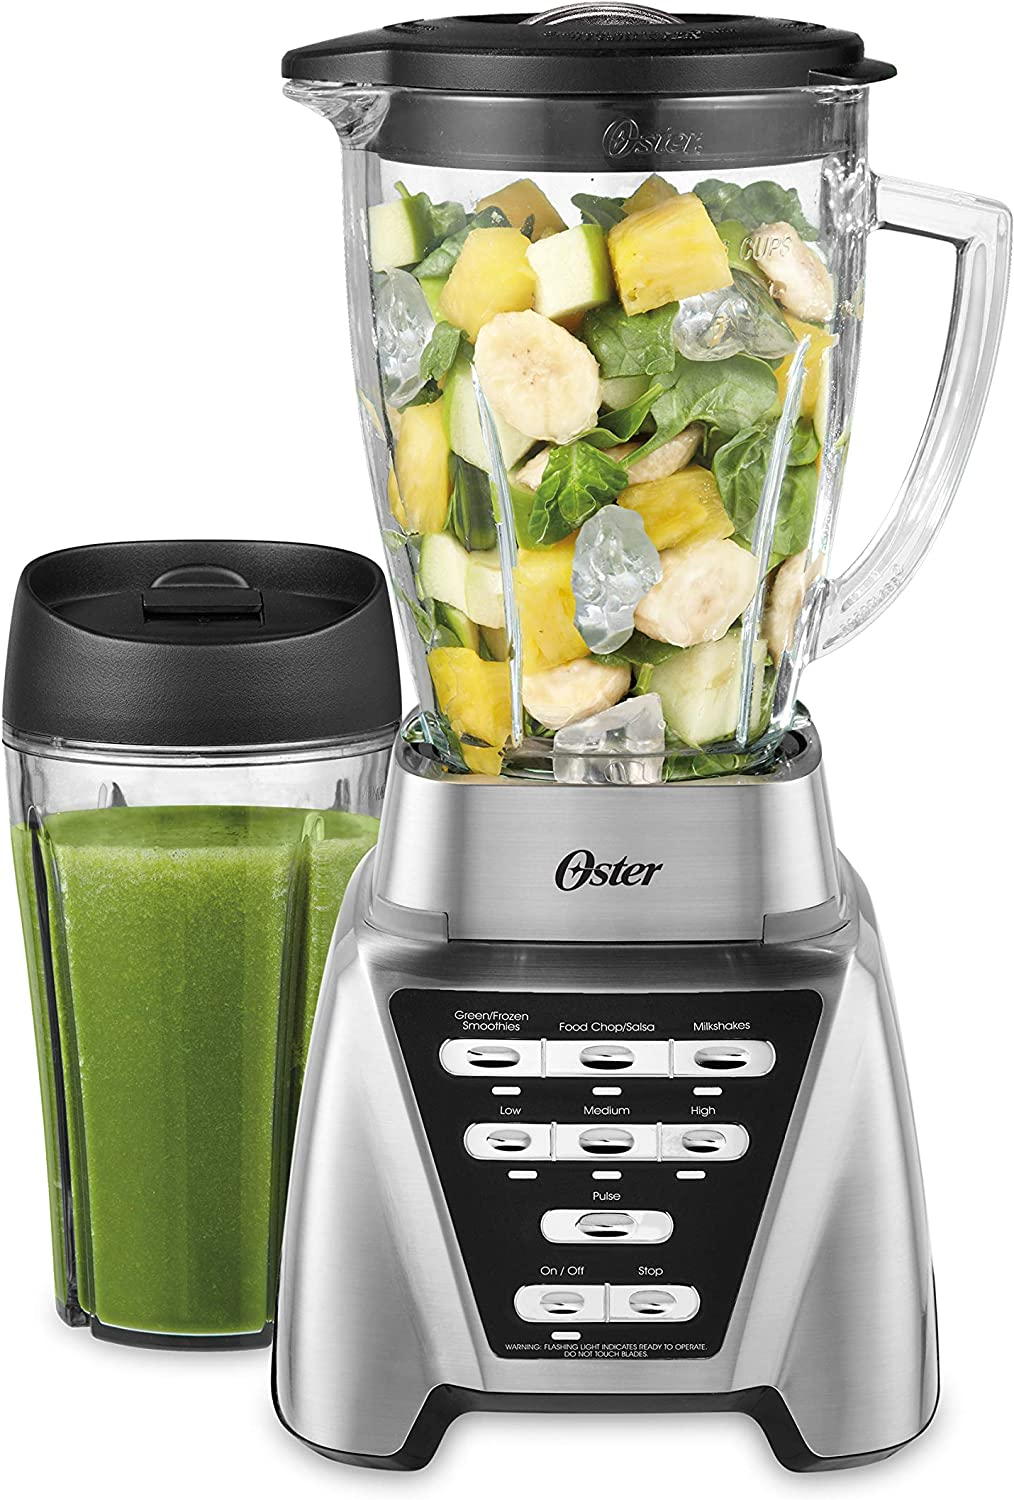 Oster Pro 1200 Blender for hummus